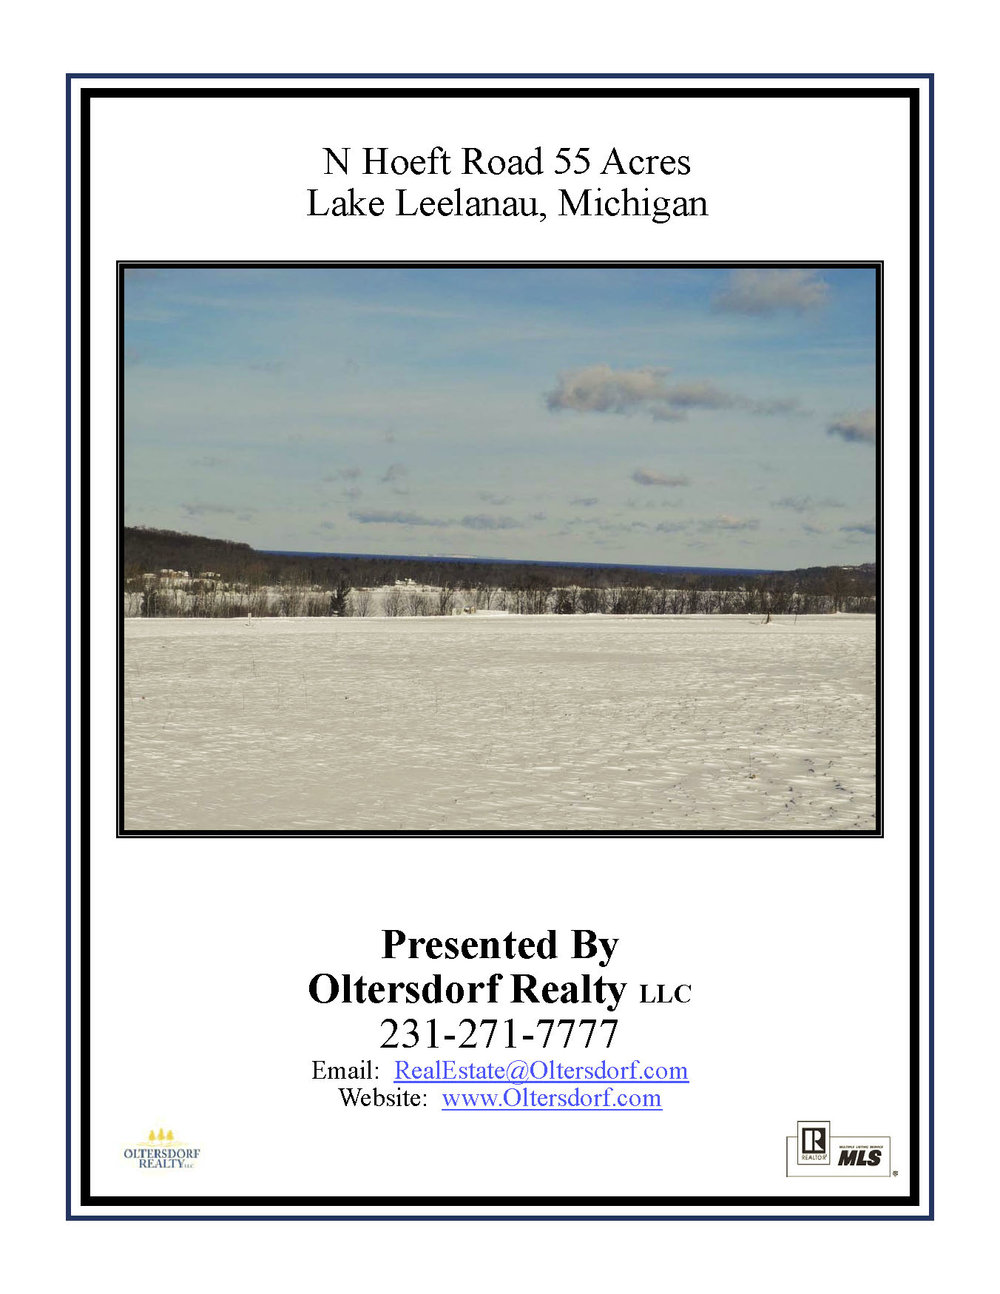 N Hoeft Road, Lake Leelanau - Marketing Packet_Page_01.jpg